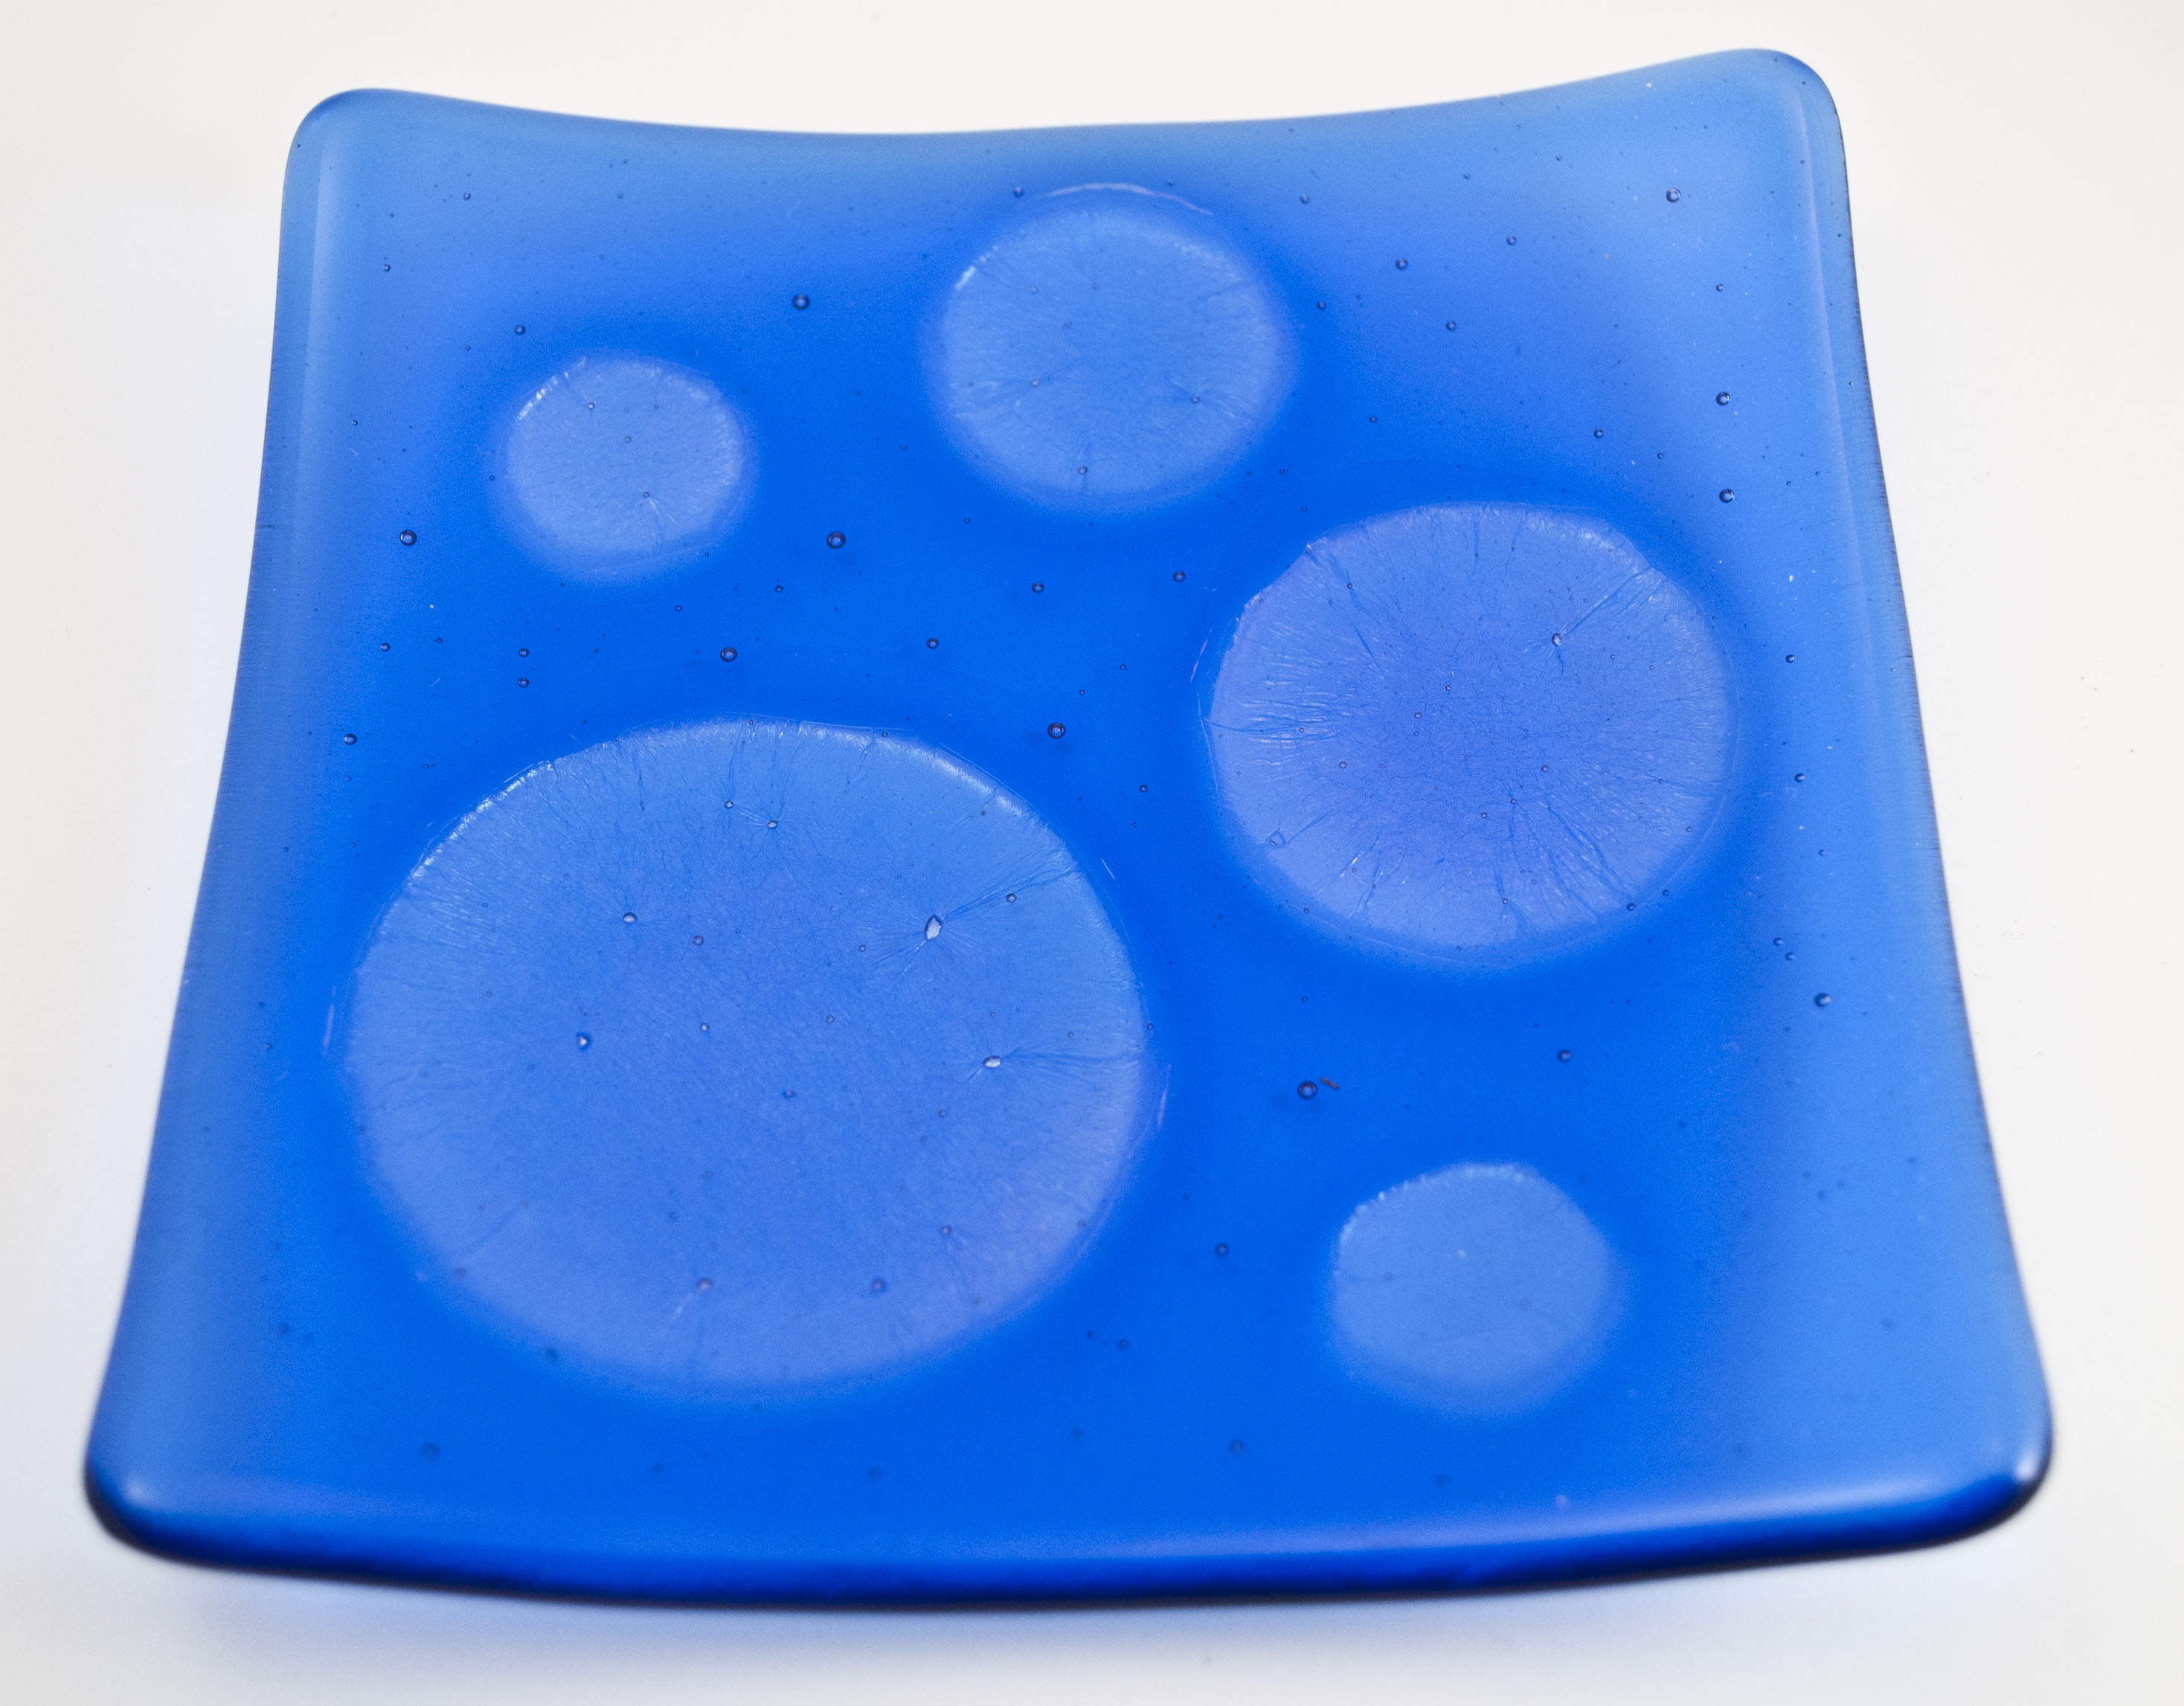 Blue dish with clear irid circles